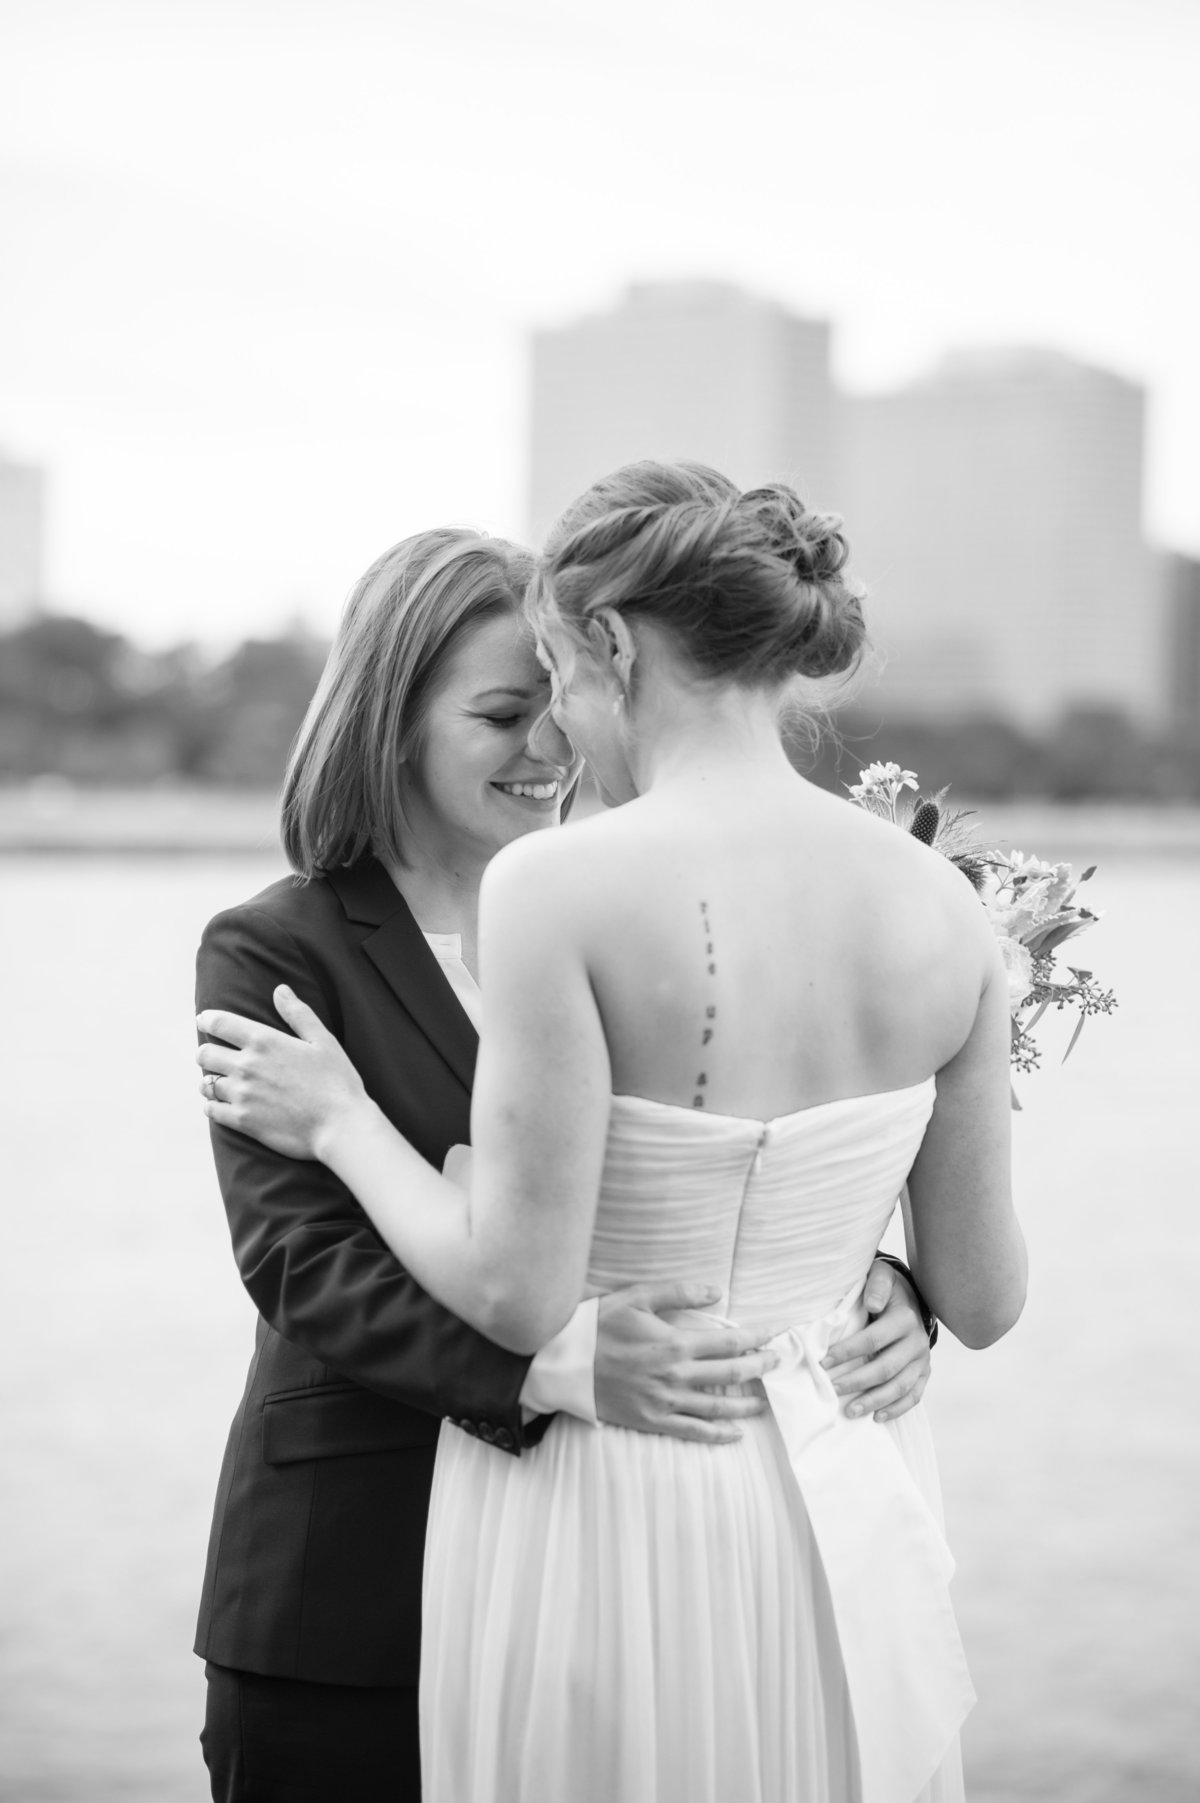 Destination Wedding Photography Chicago Wedding Photography LGBT Wedding Photography Promontory Point052